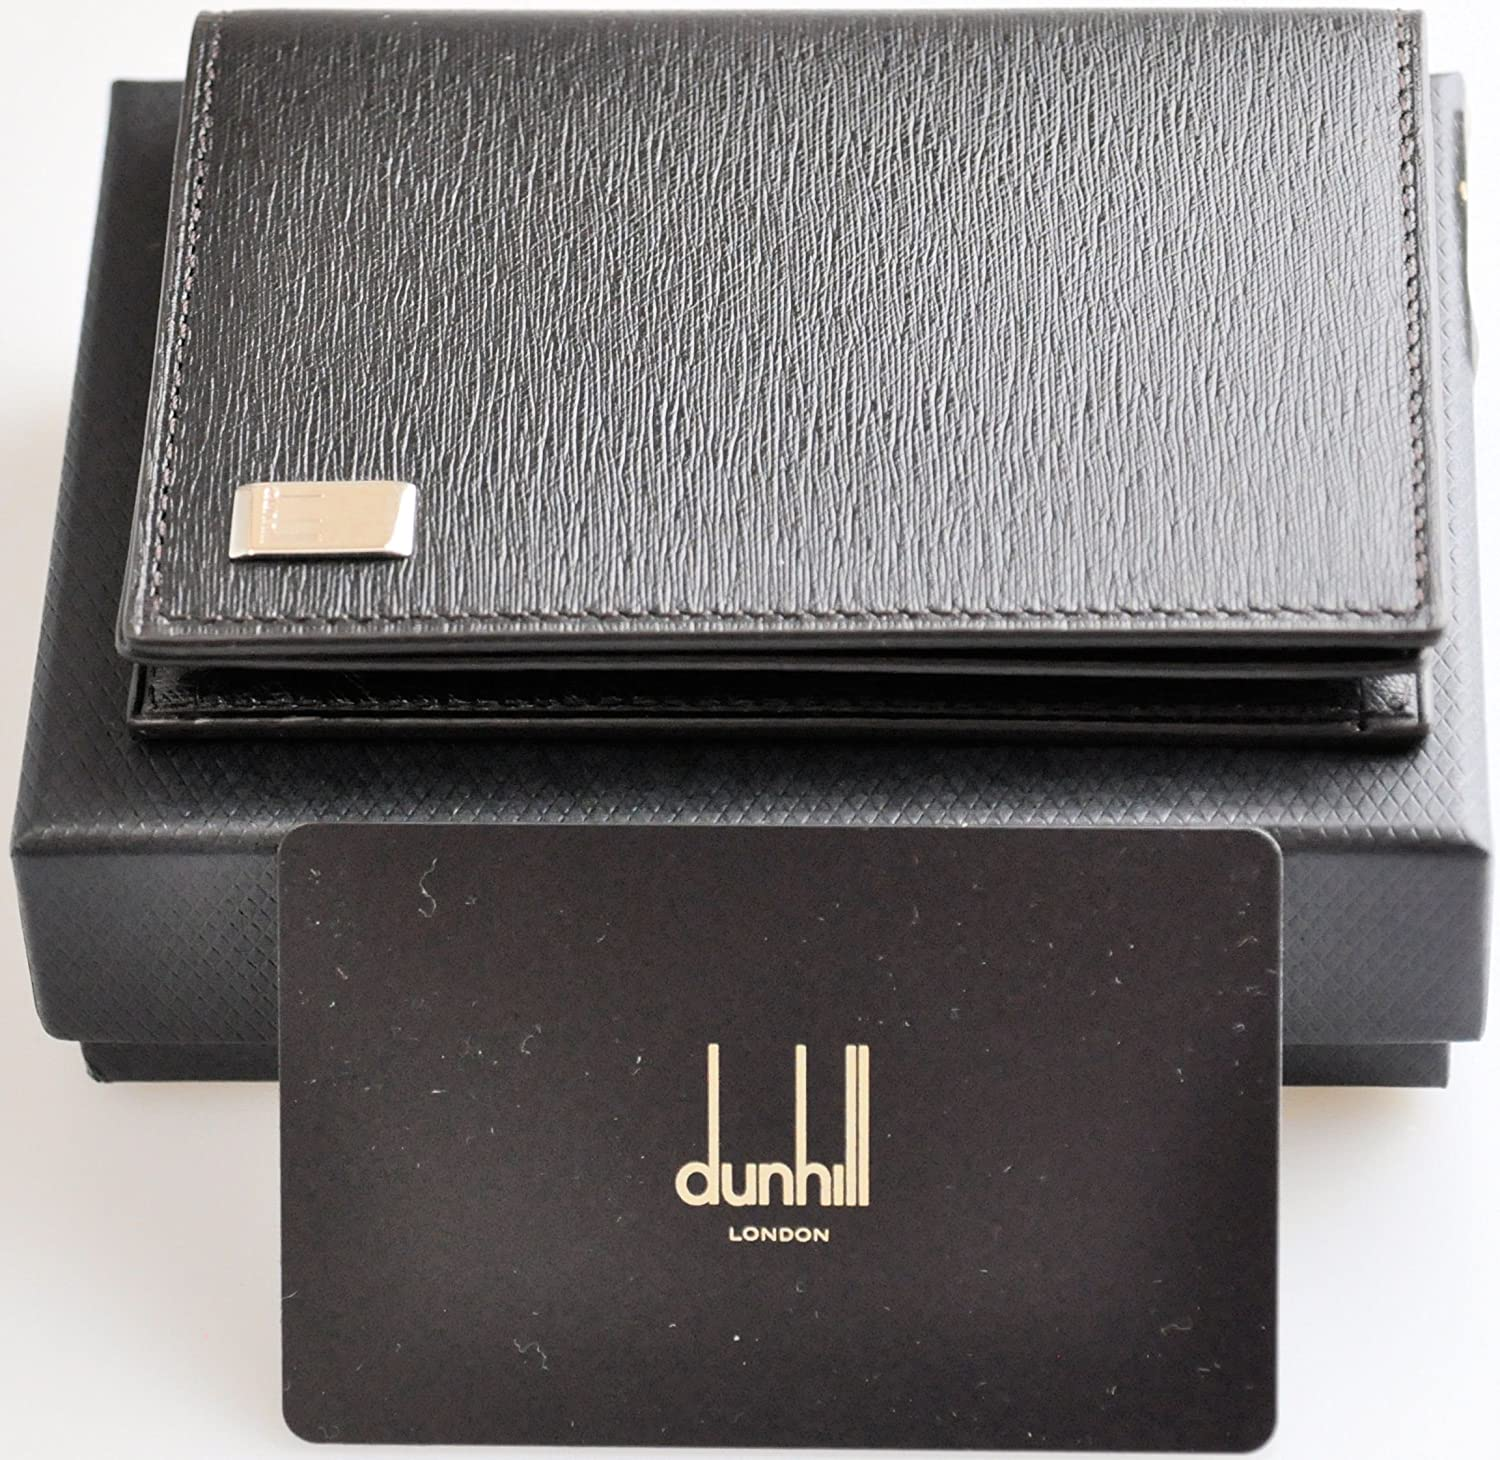 Dunhill sidecar business card case: Amazon.co.uk: Clothing